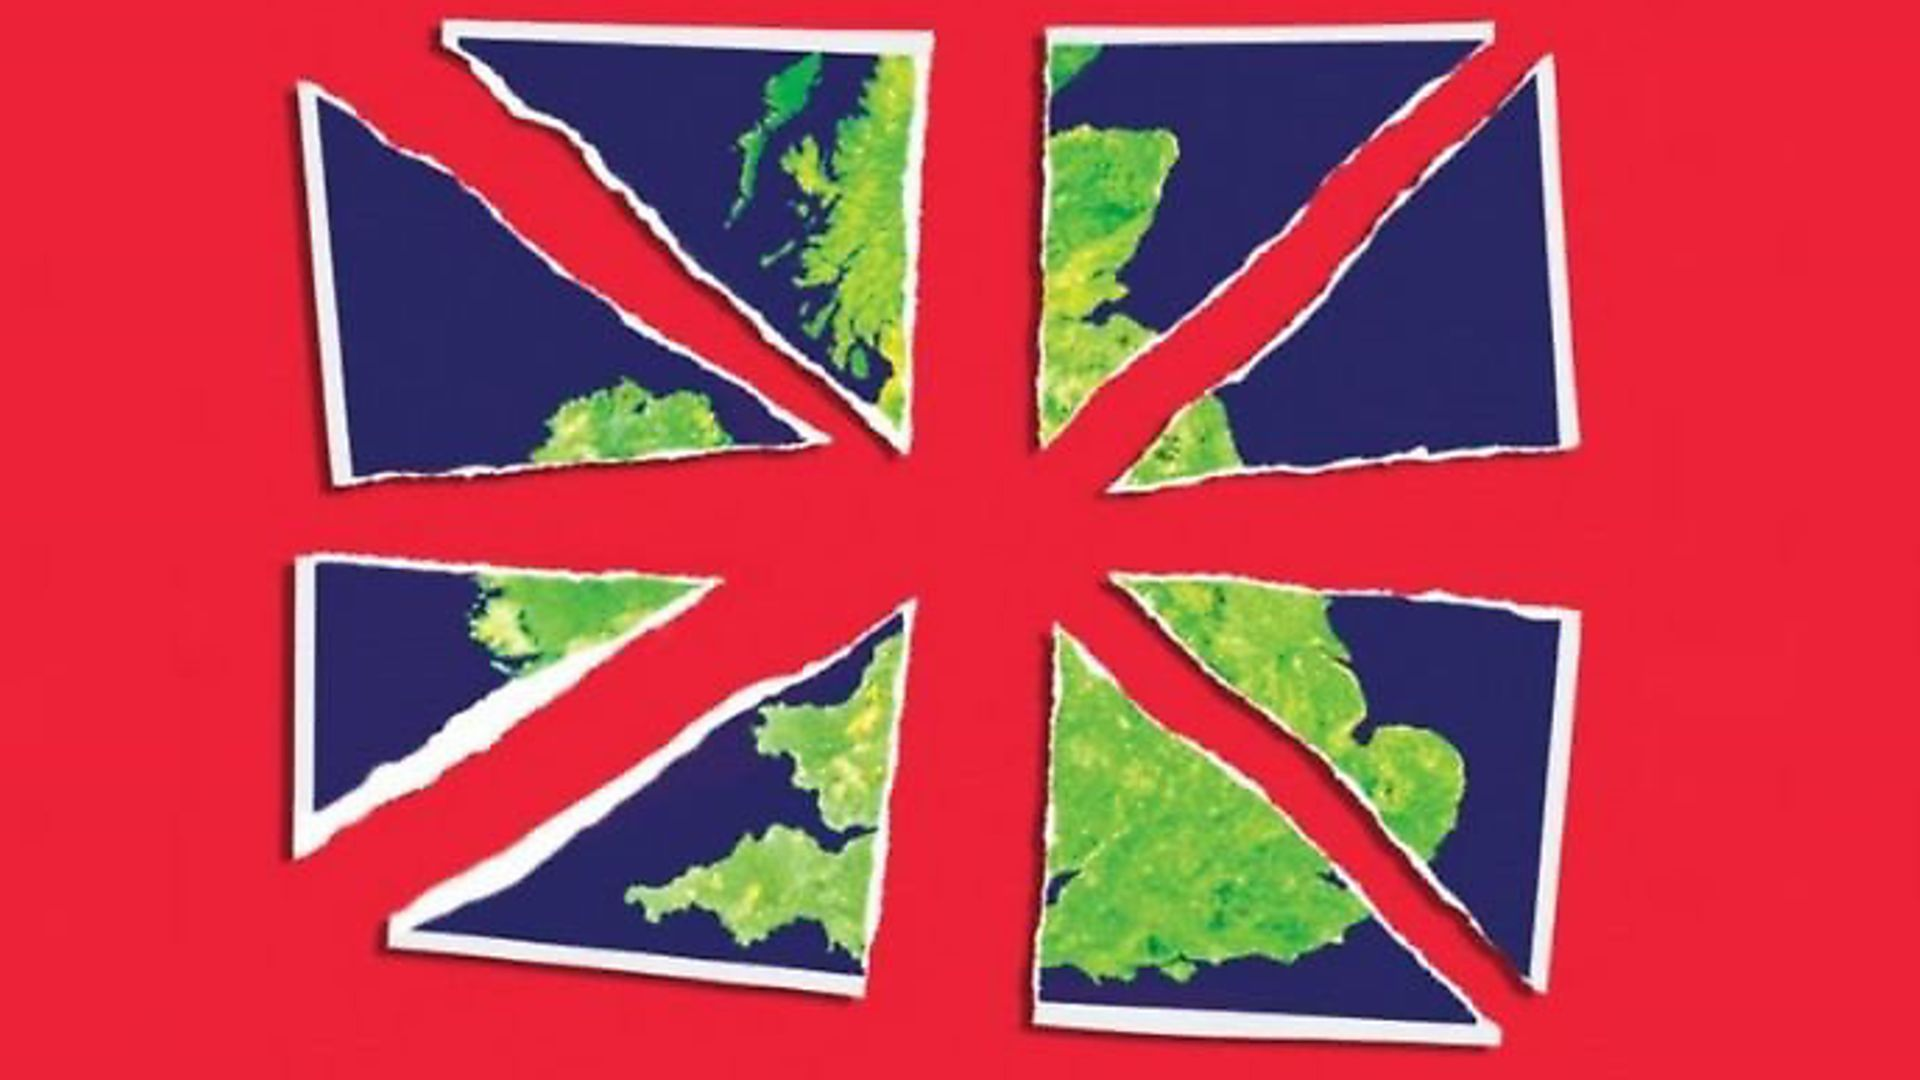 Torn apart? Obituaries for the United Kingdom are already being written. Illustration: Chris Barker/The New European. - Credit: Archant